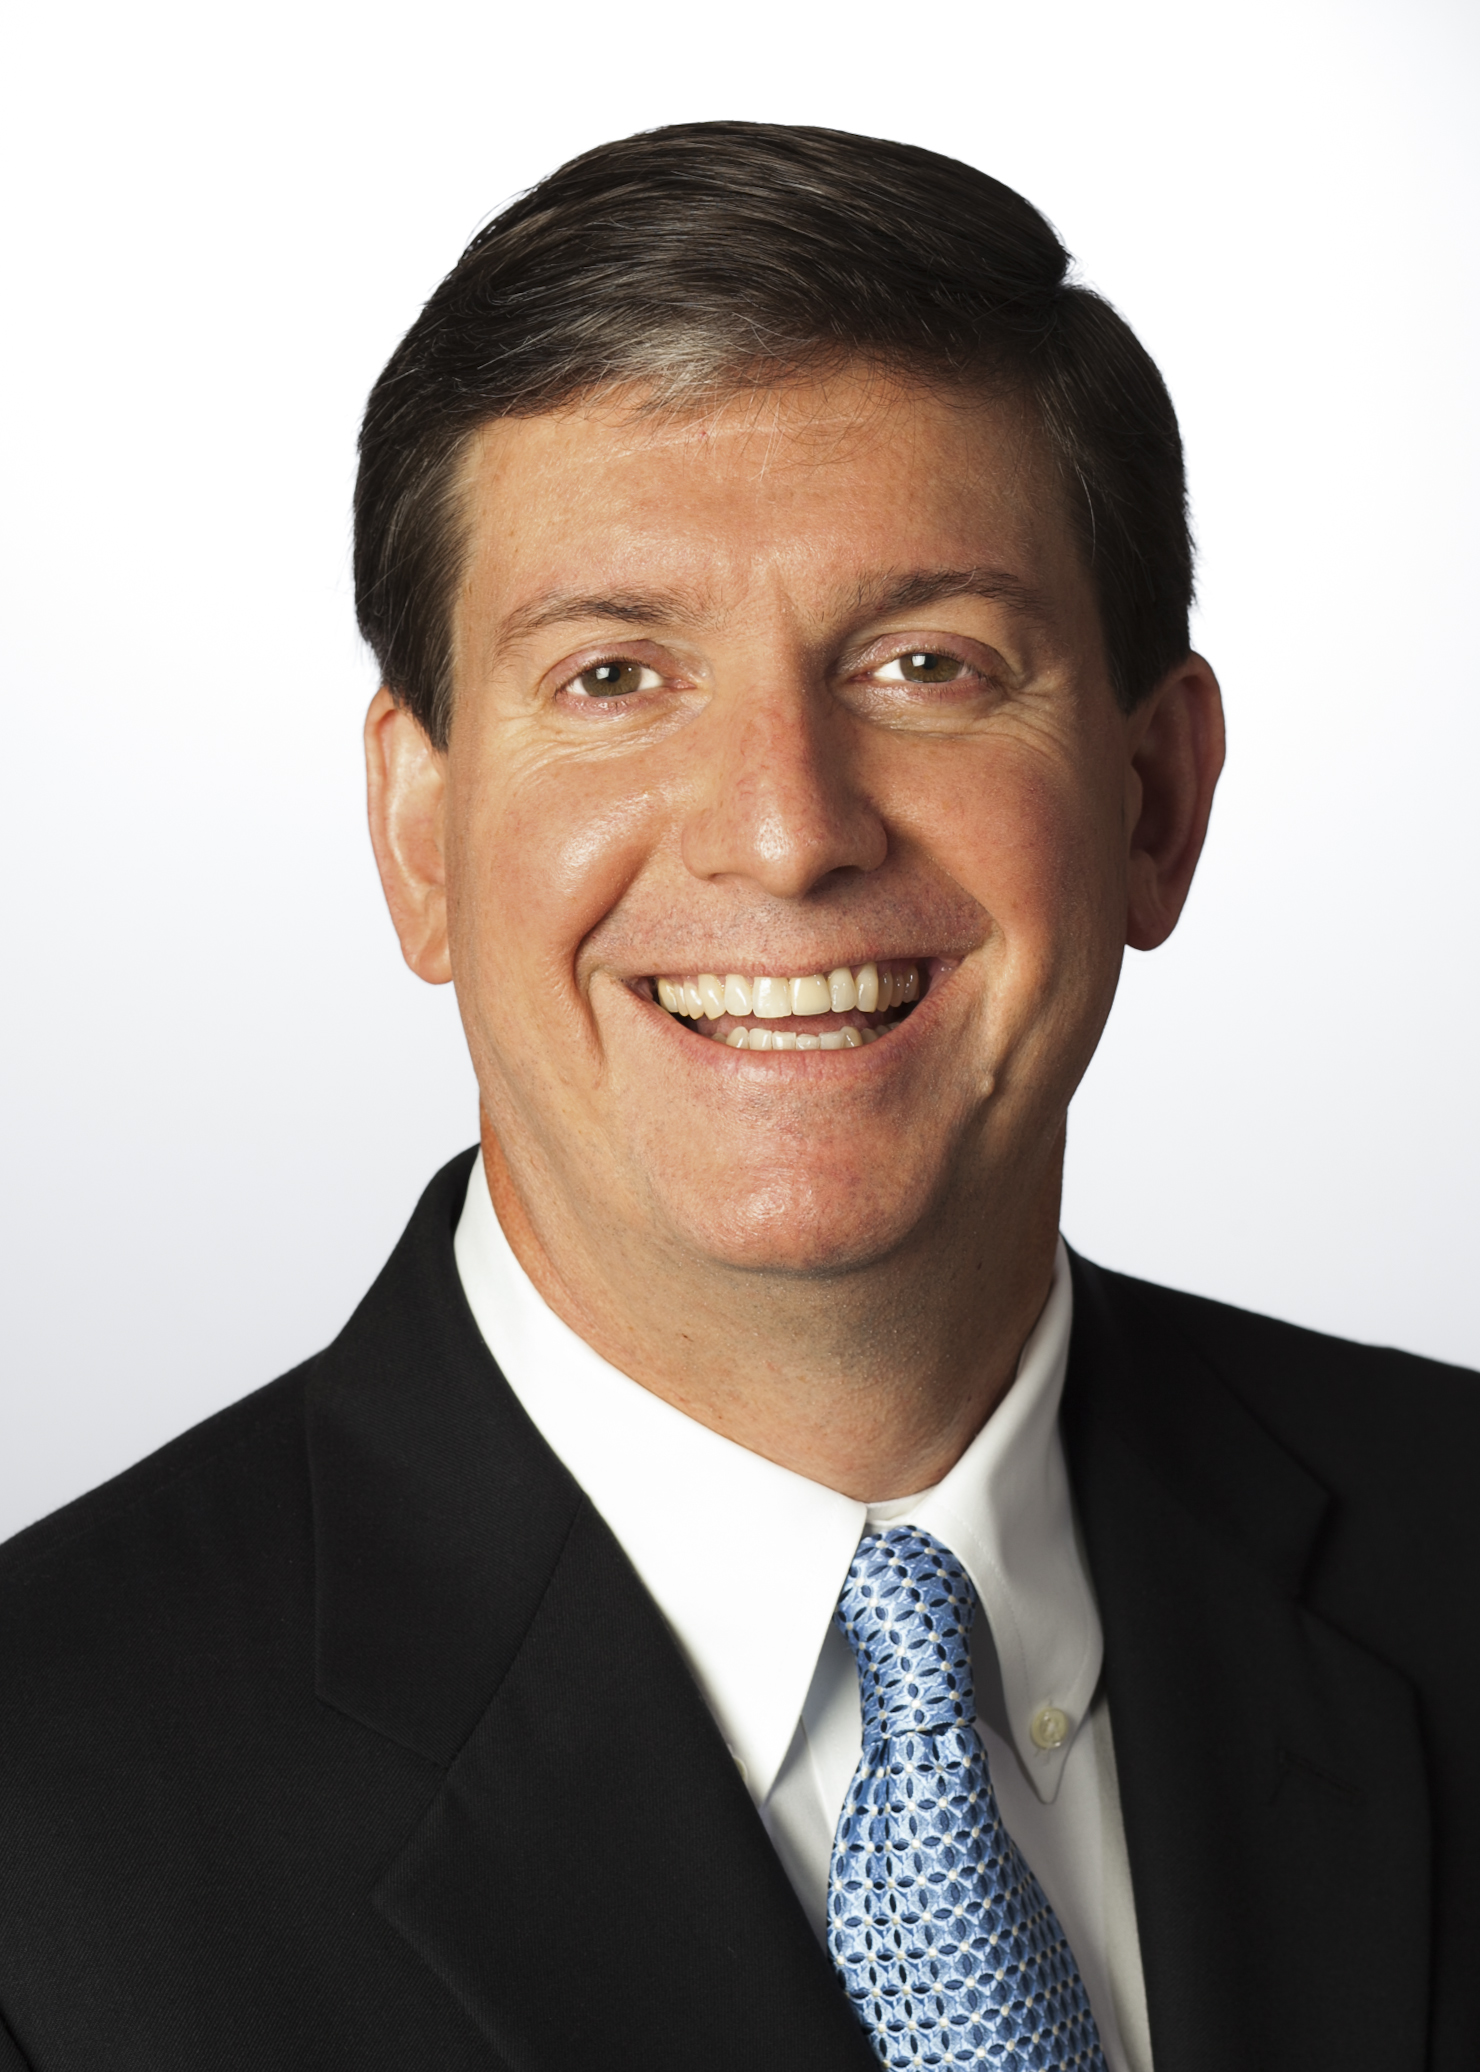 Jim David, financial advisor Arlington VA